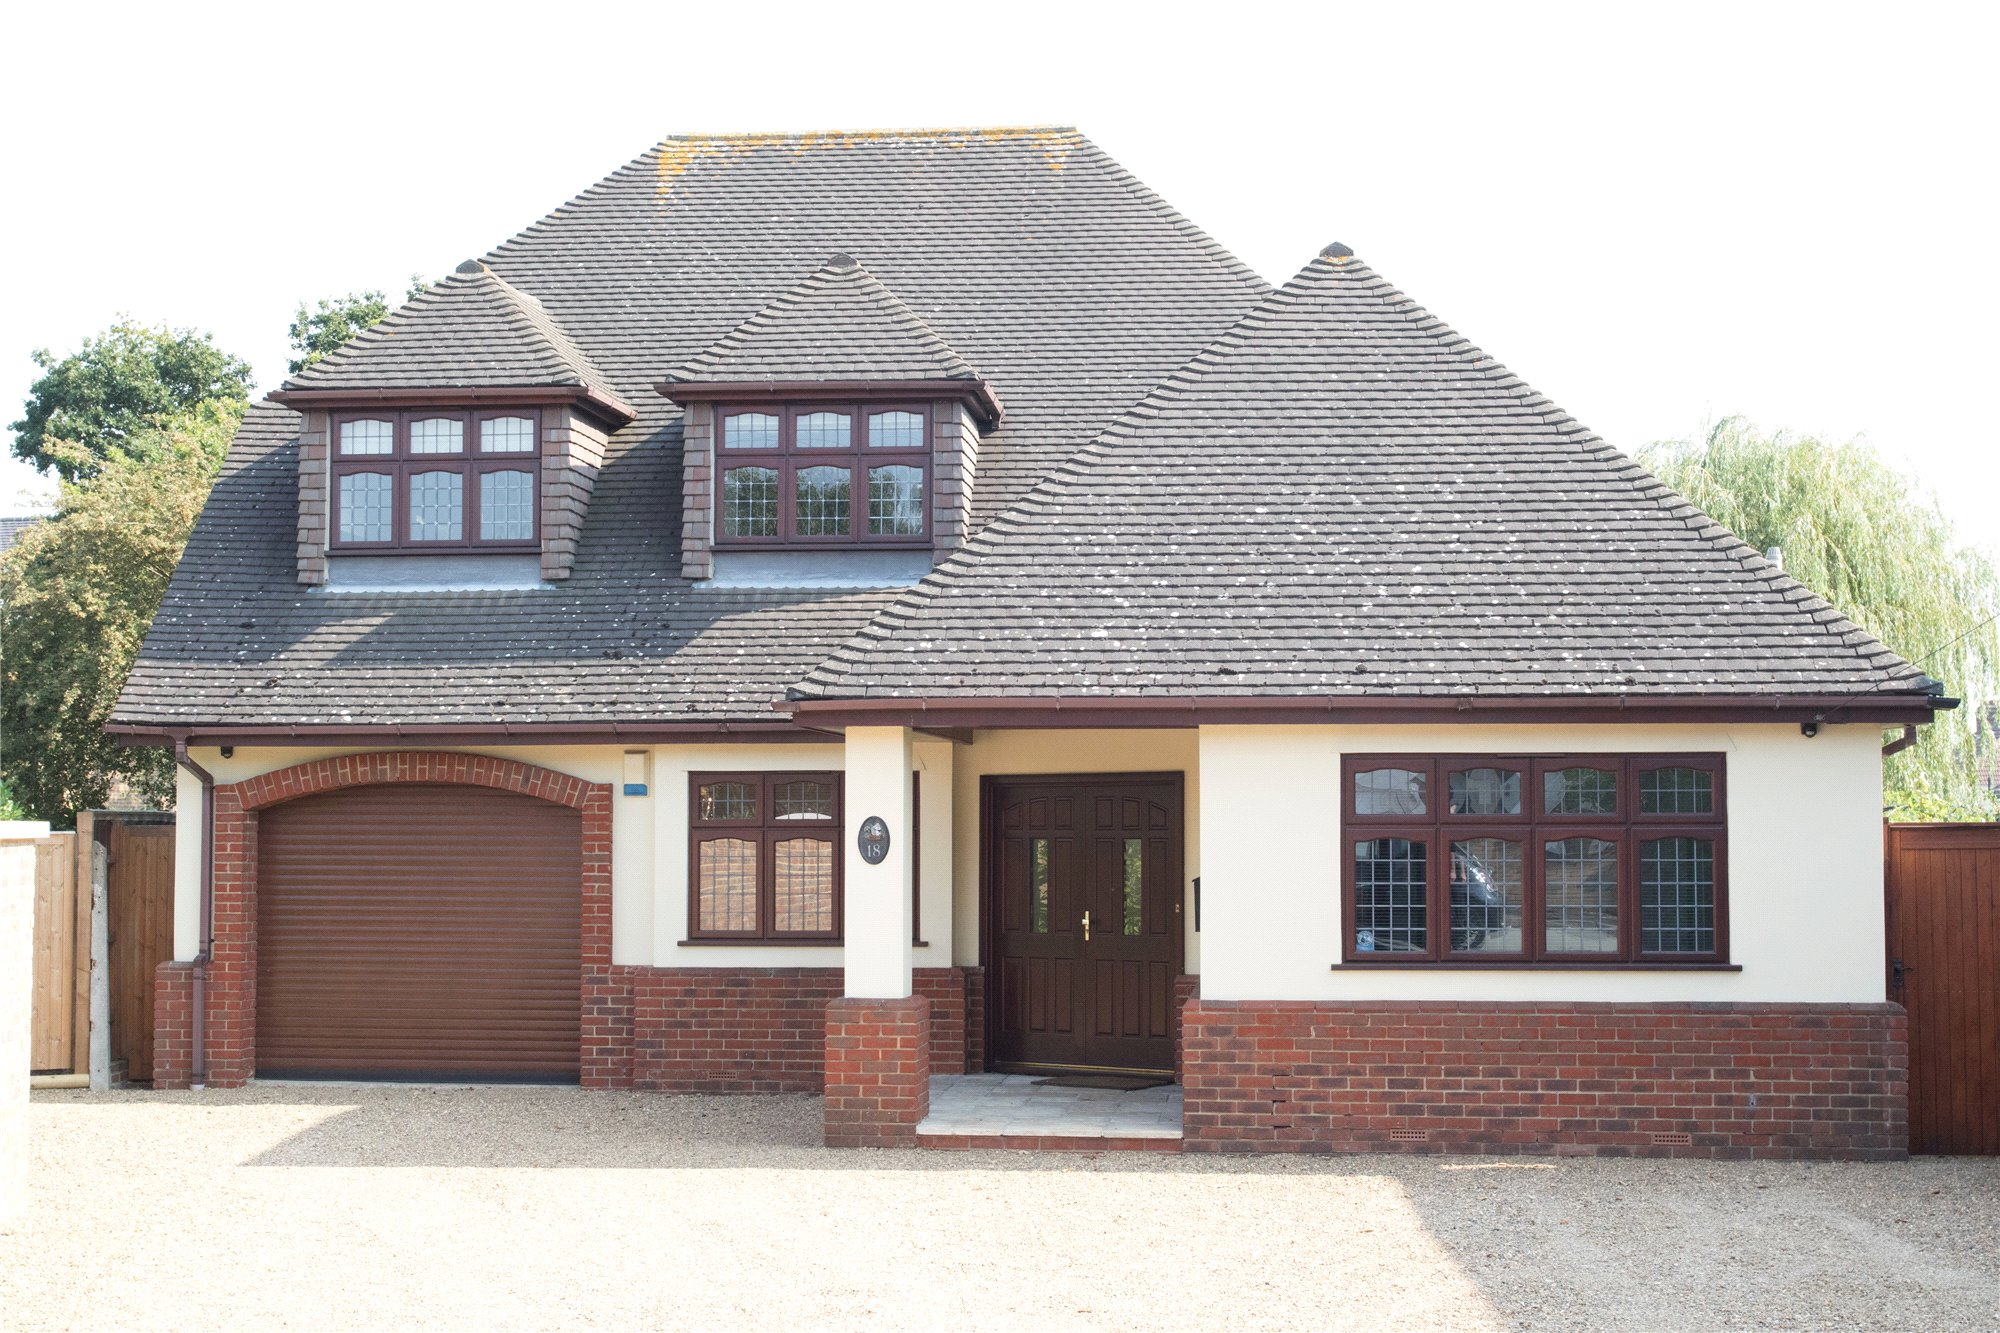 Hill View Drive, Welling, Kent, DA16